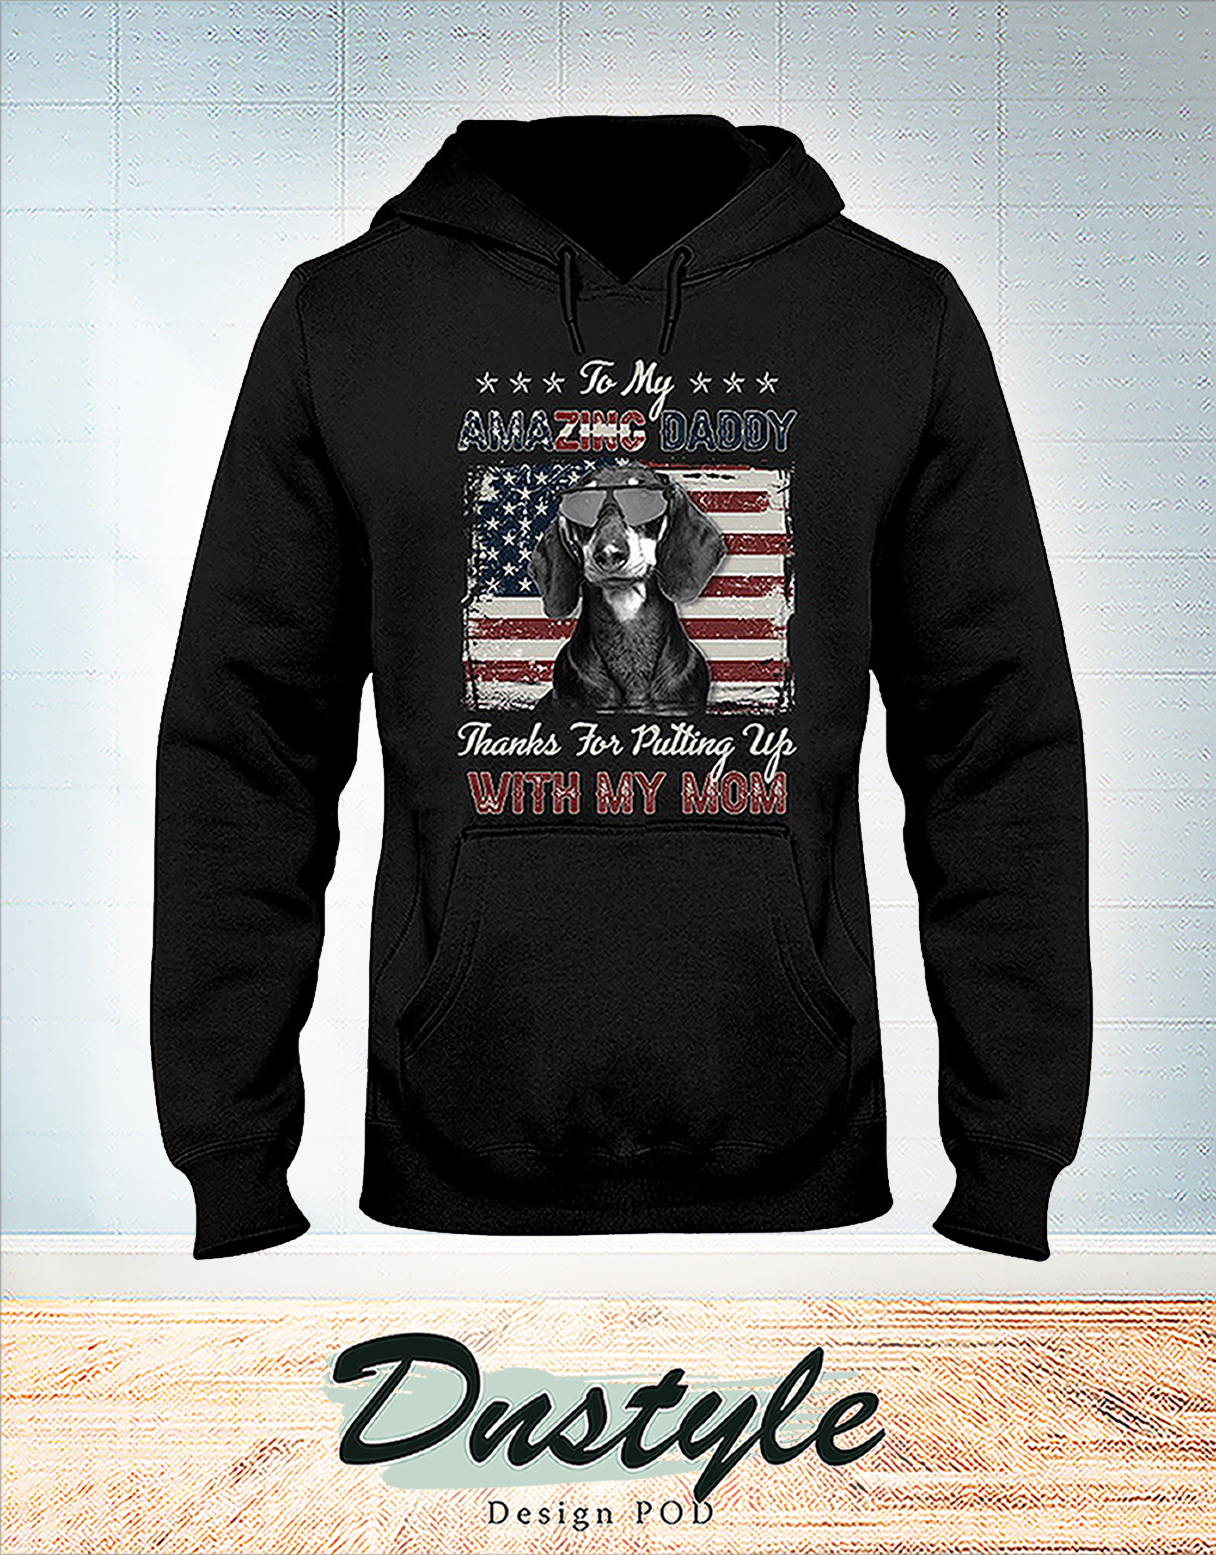 Dachshund to my amazing daddy thanks for putting up with my mom hoodie